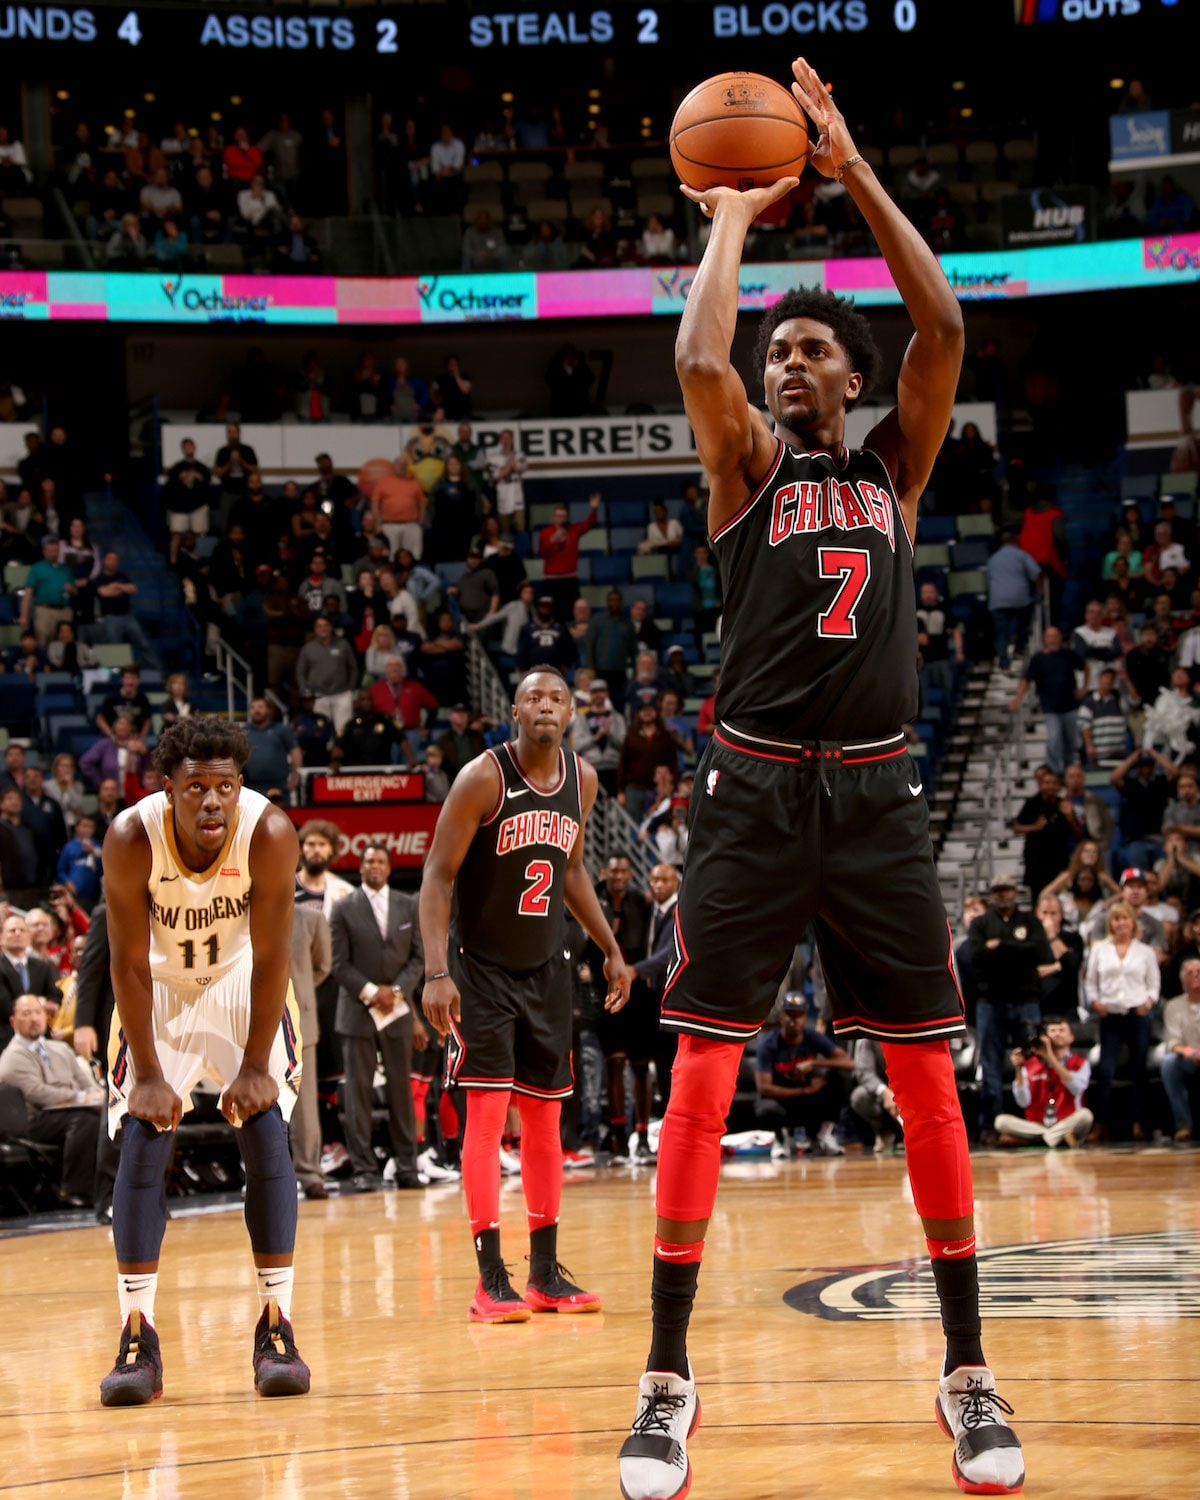 Justin Holiday #7 of the Chicago Bulls shoots a free throw at the the Smoothie King Center in New Orleans, Louisiana.